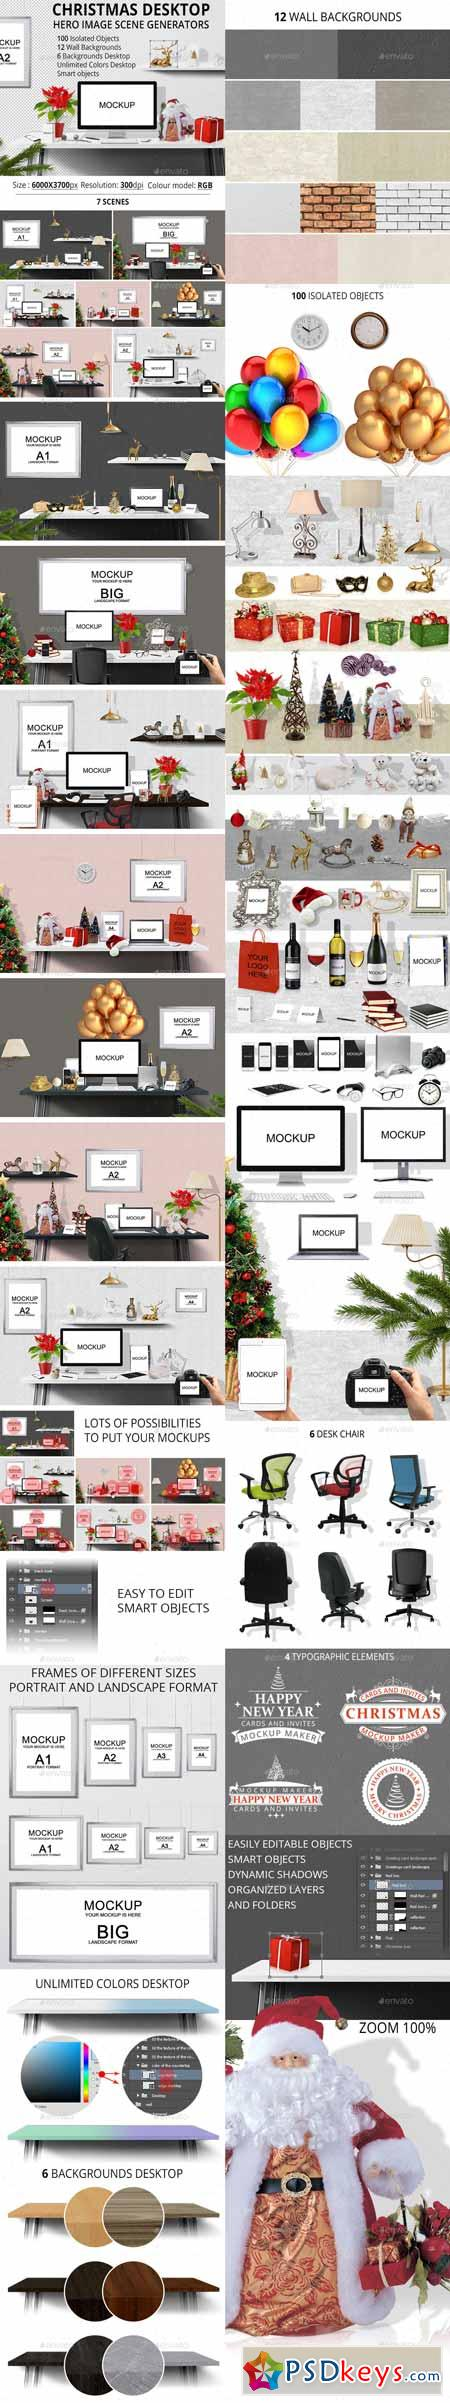 Christmas Desktop Hero Image Scene Generators 12932661